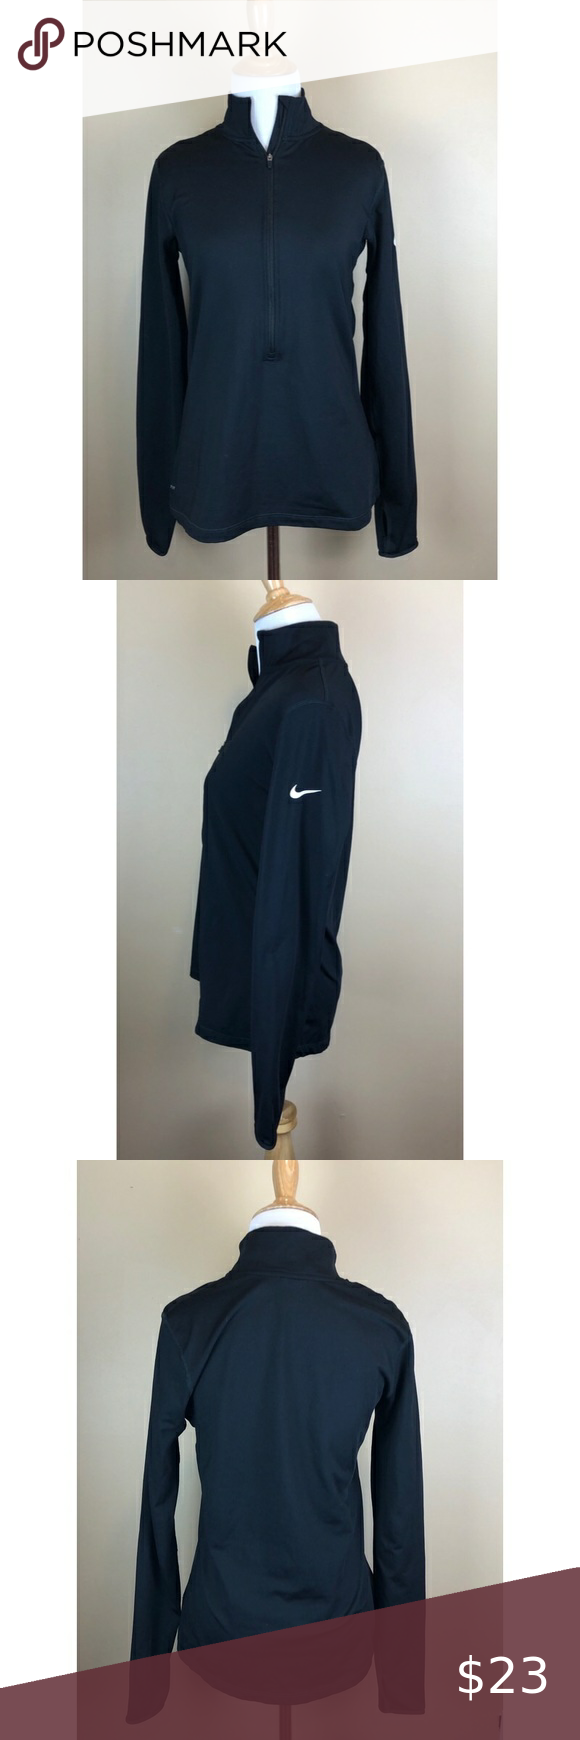 Nike Pro Black Long Sleeve 1/4 Zip Workout Top L Size: large  Color: black Brand: Nike Conditon: great, gently used no flaws to note   This Nike Pro Black Long Sleeve 1/4 Zip Workout Top L is very cute and comfortable. This has thumb holes as well. Semi Tight fit, great for working out or even lounging. Nike Tops Tees - Long Sleeve